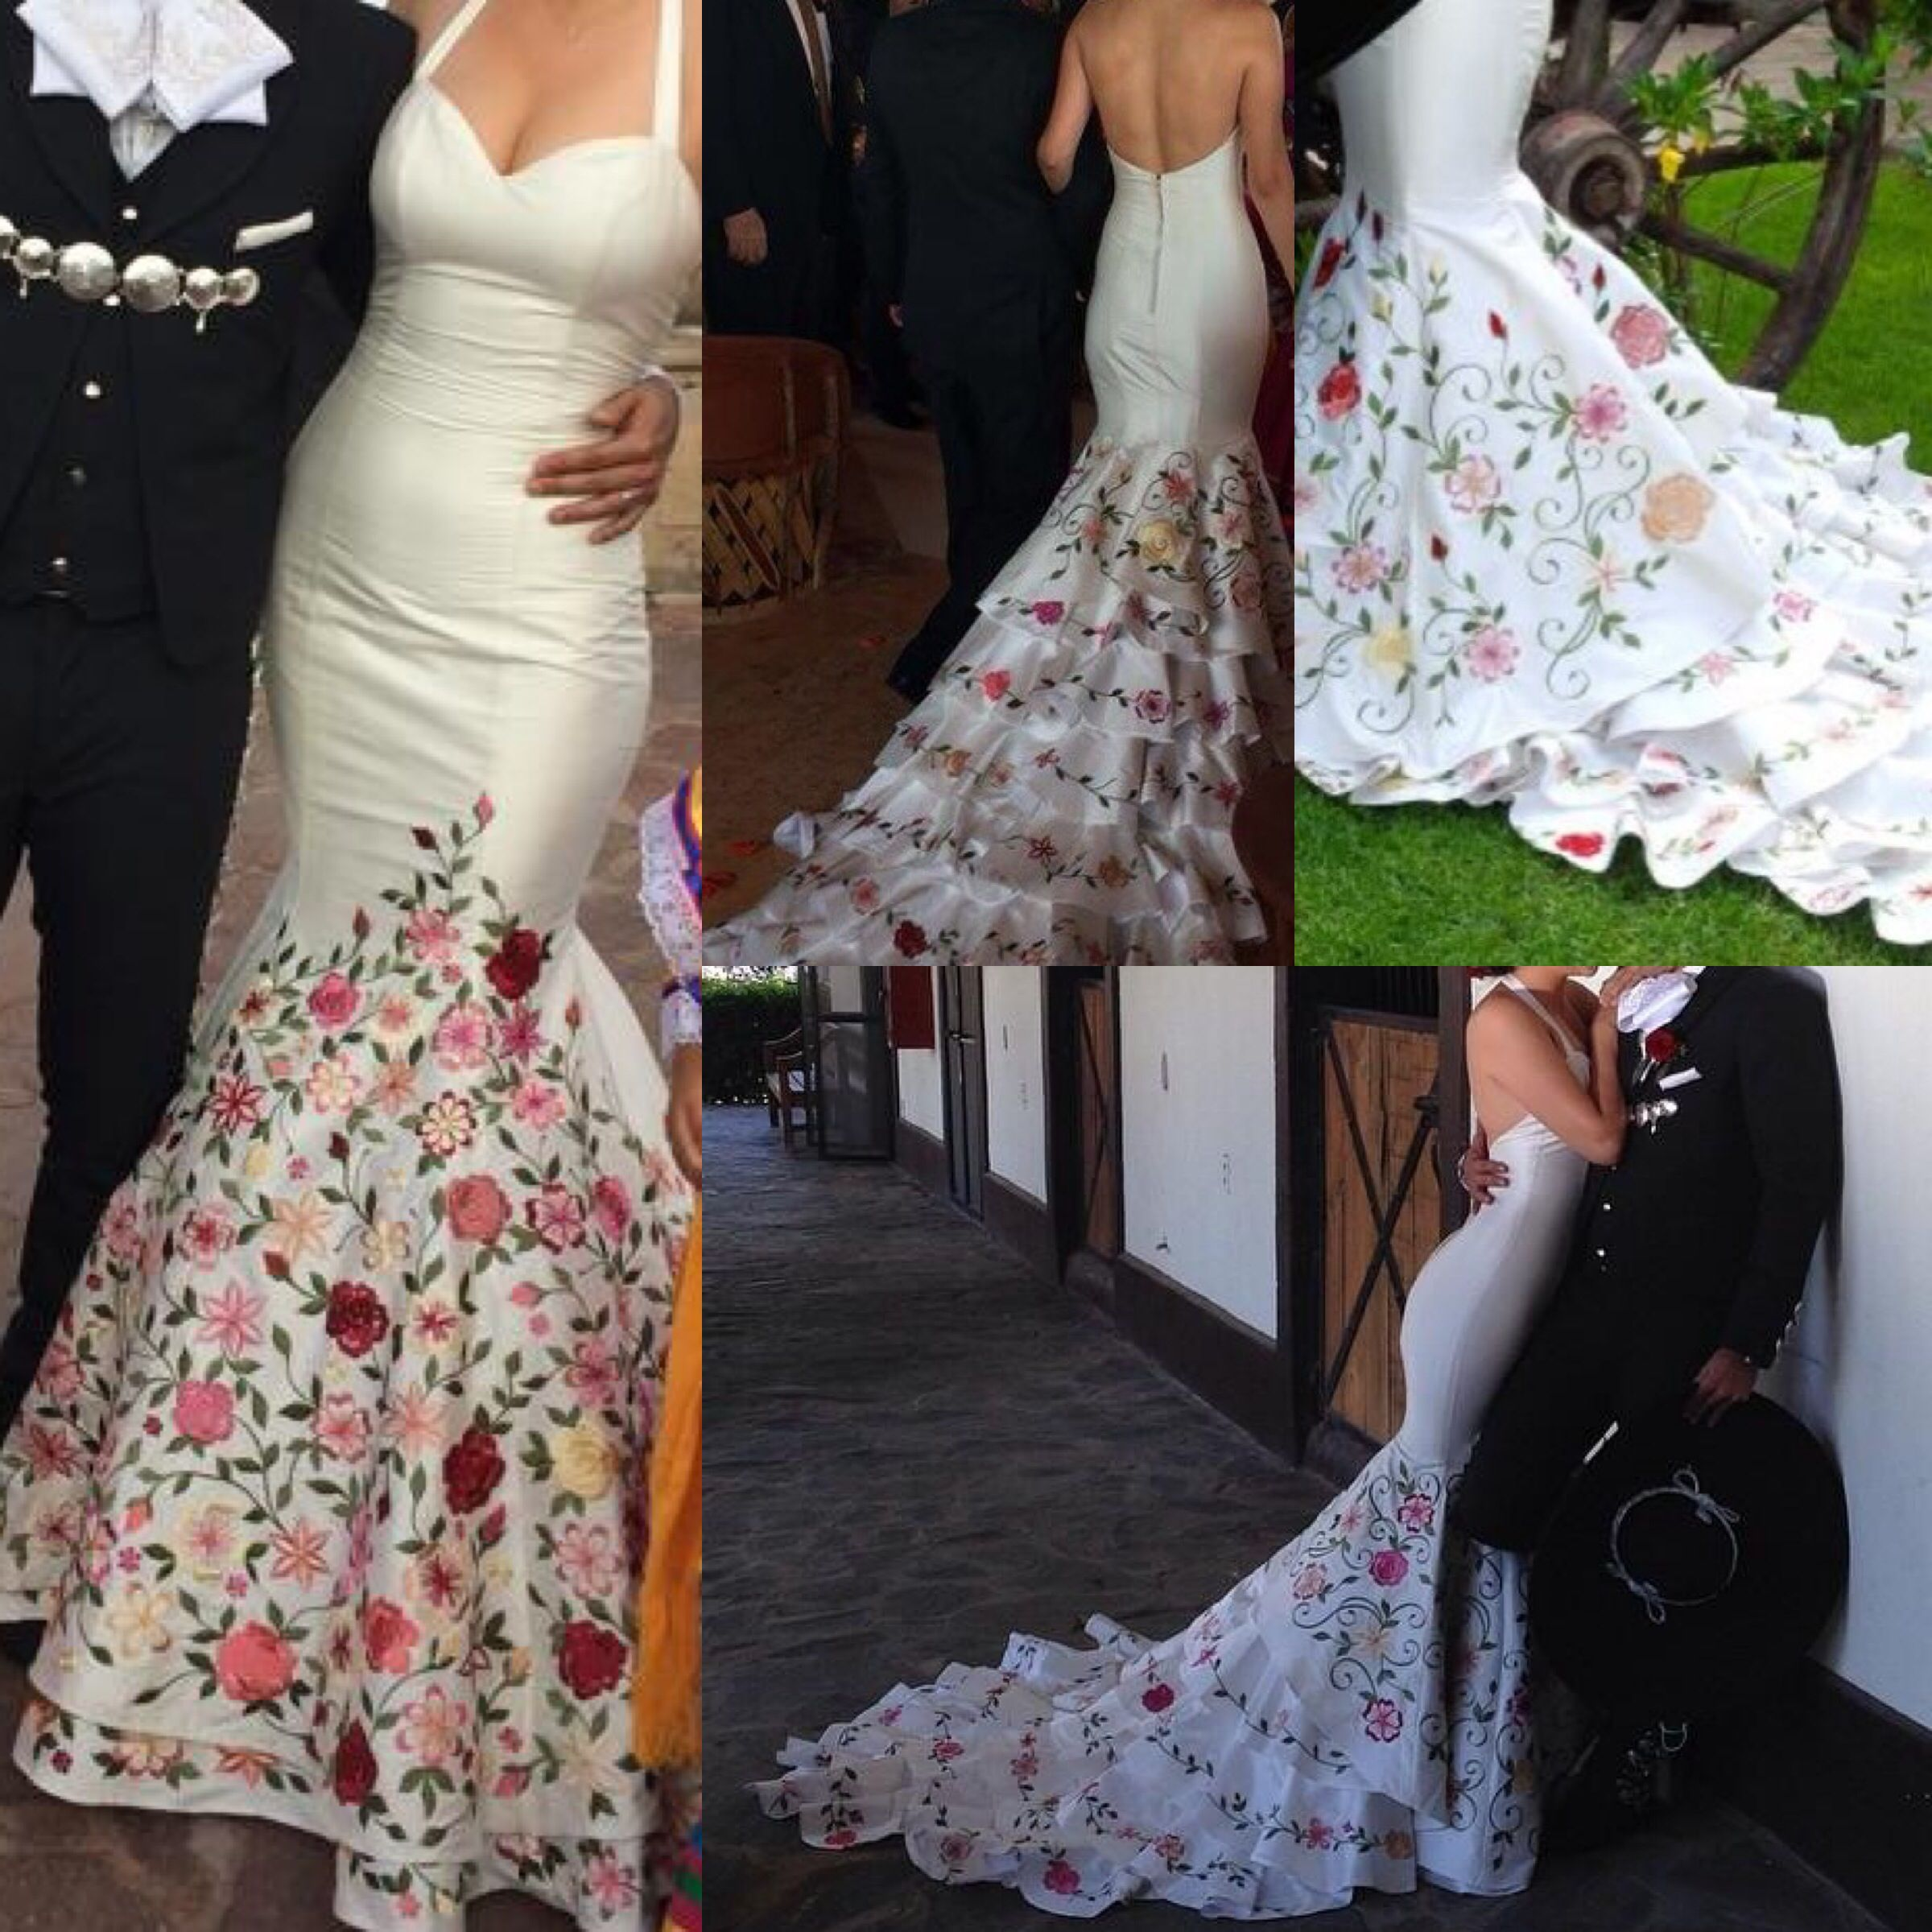 Mexican themed wedding dress  Ana patricias wedding dress Beautiful simple u unique  Dresses